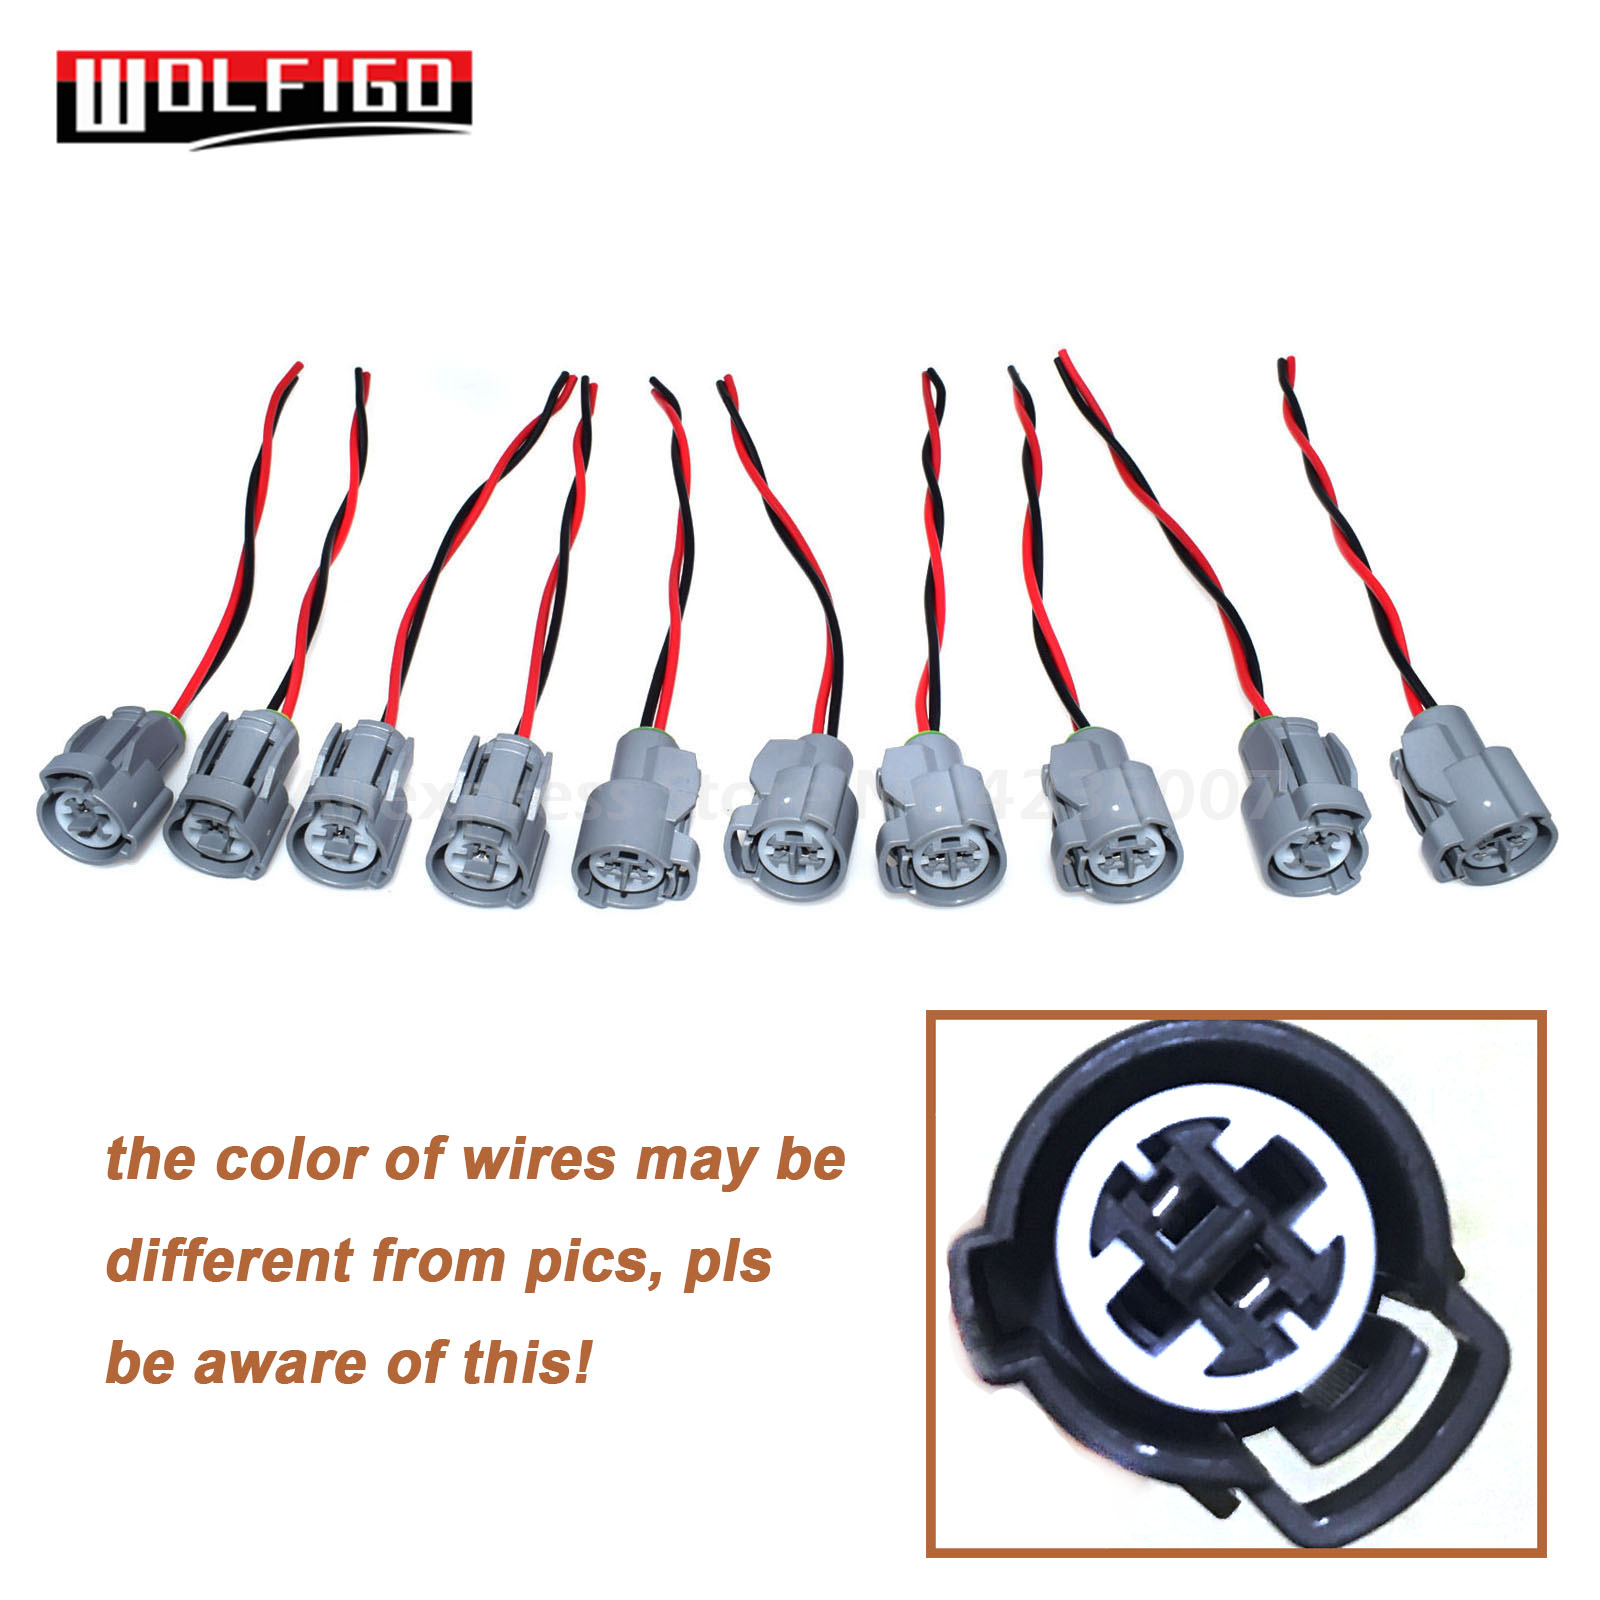 Fits Ford Radiator Cooling Fan Connector Harness Plug Pigtail